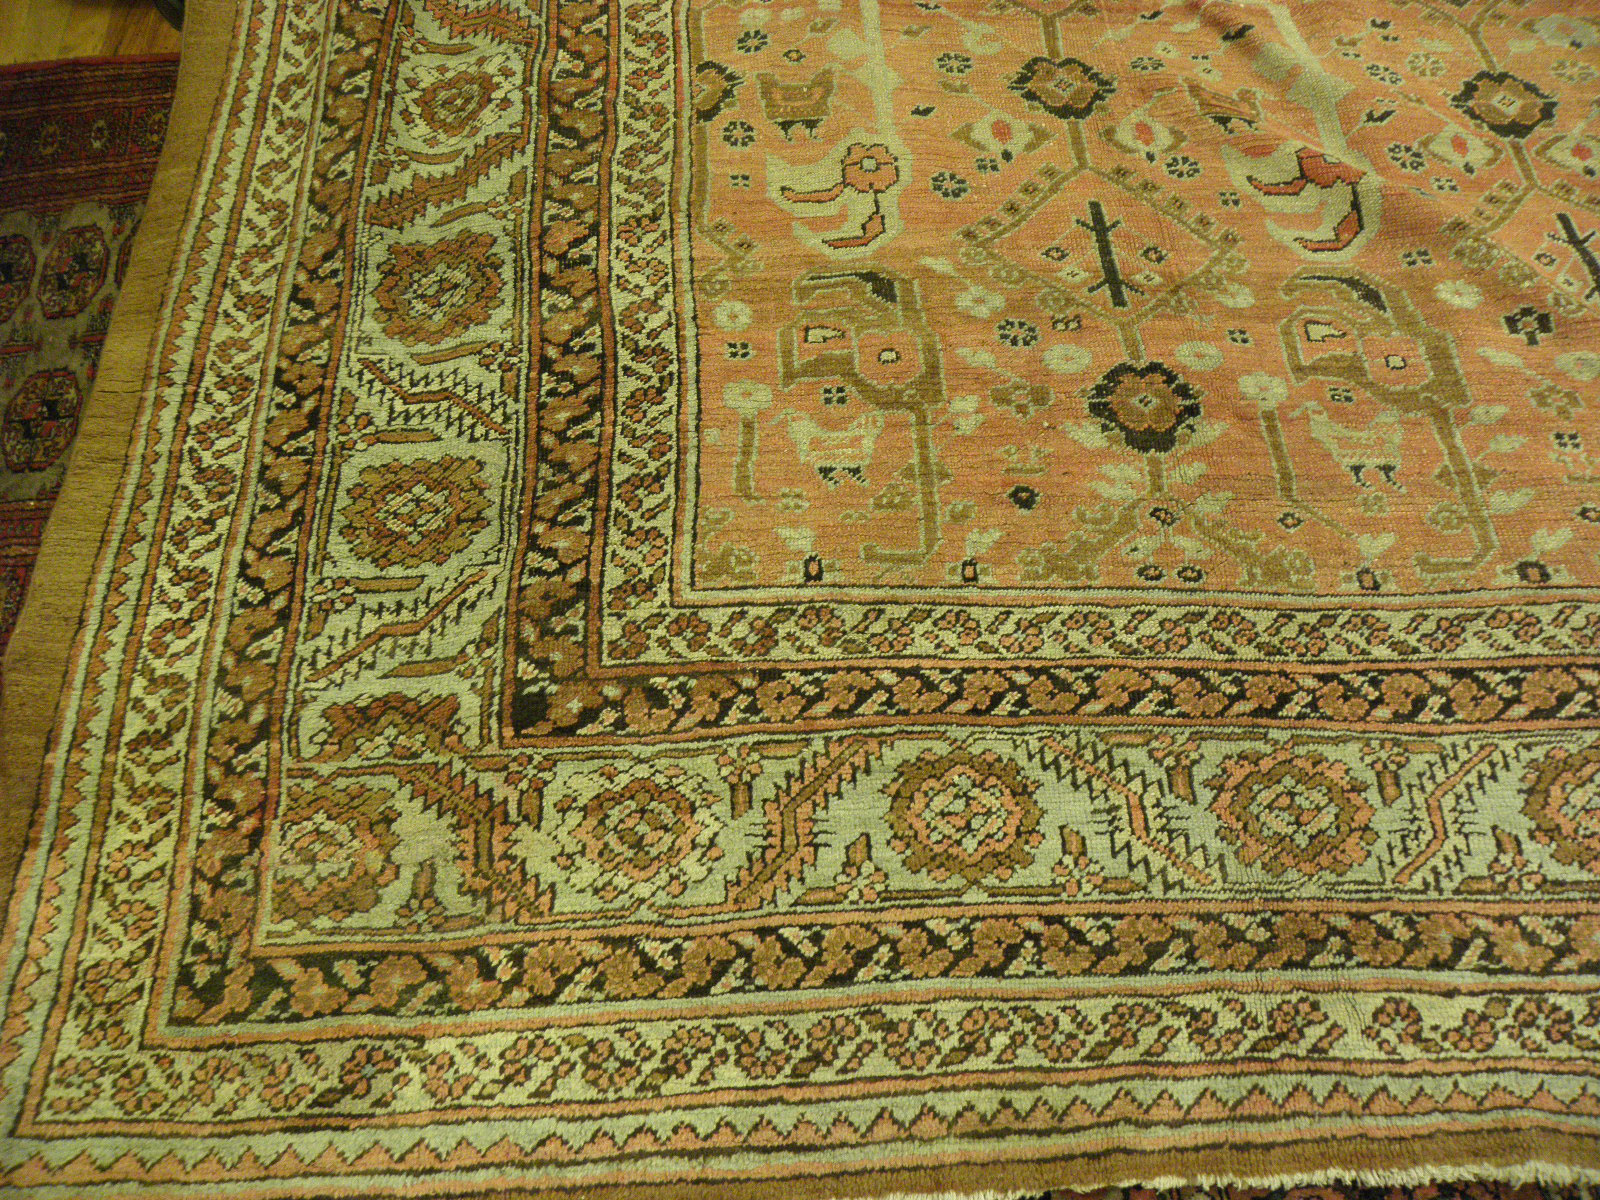 Antique bakshaish Carpet - # 6750